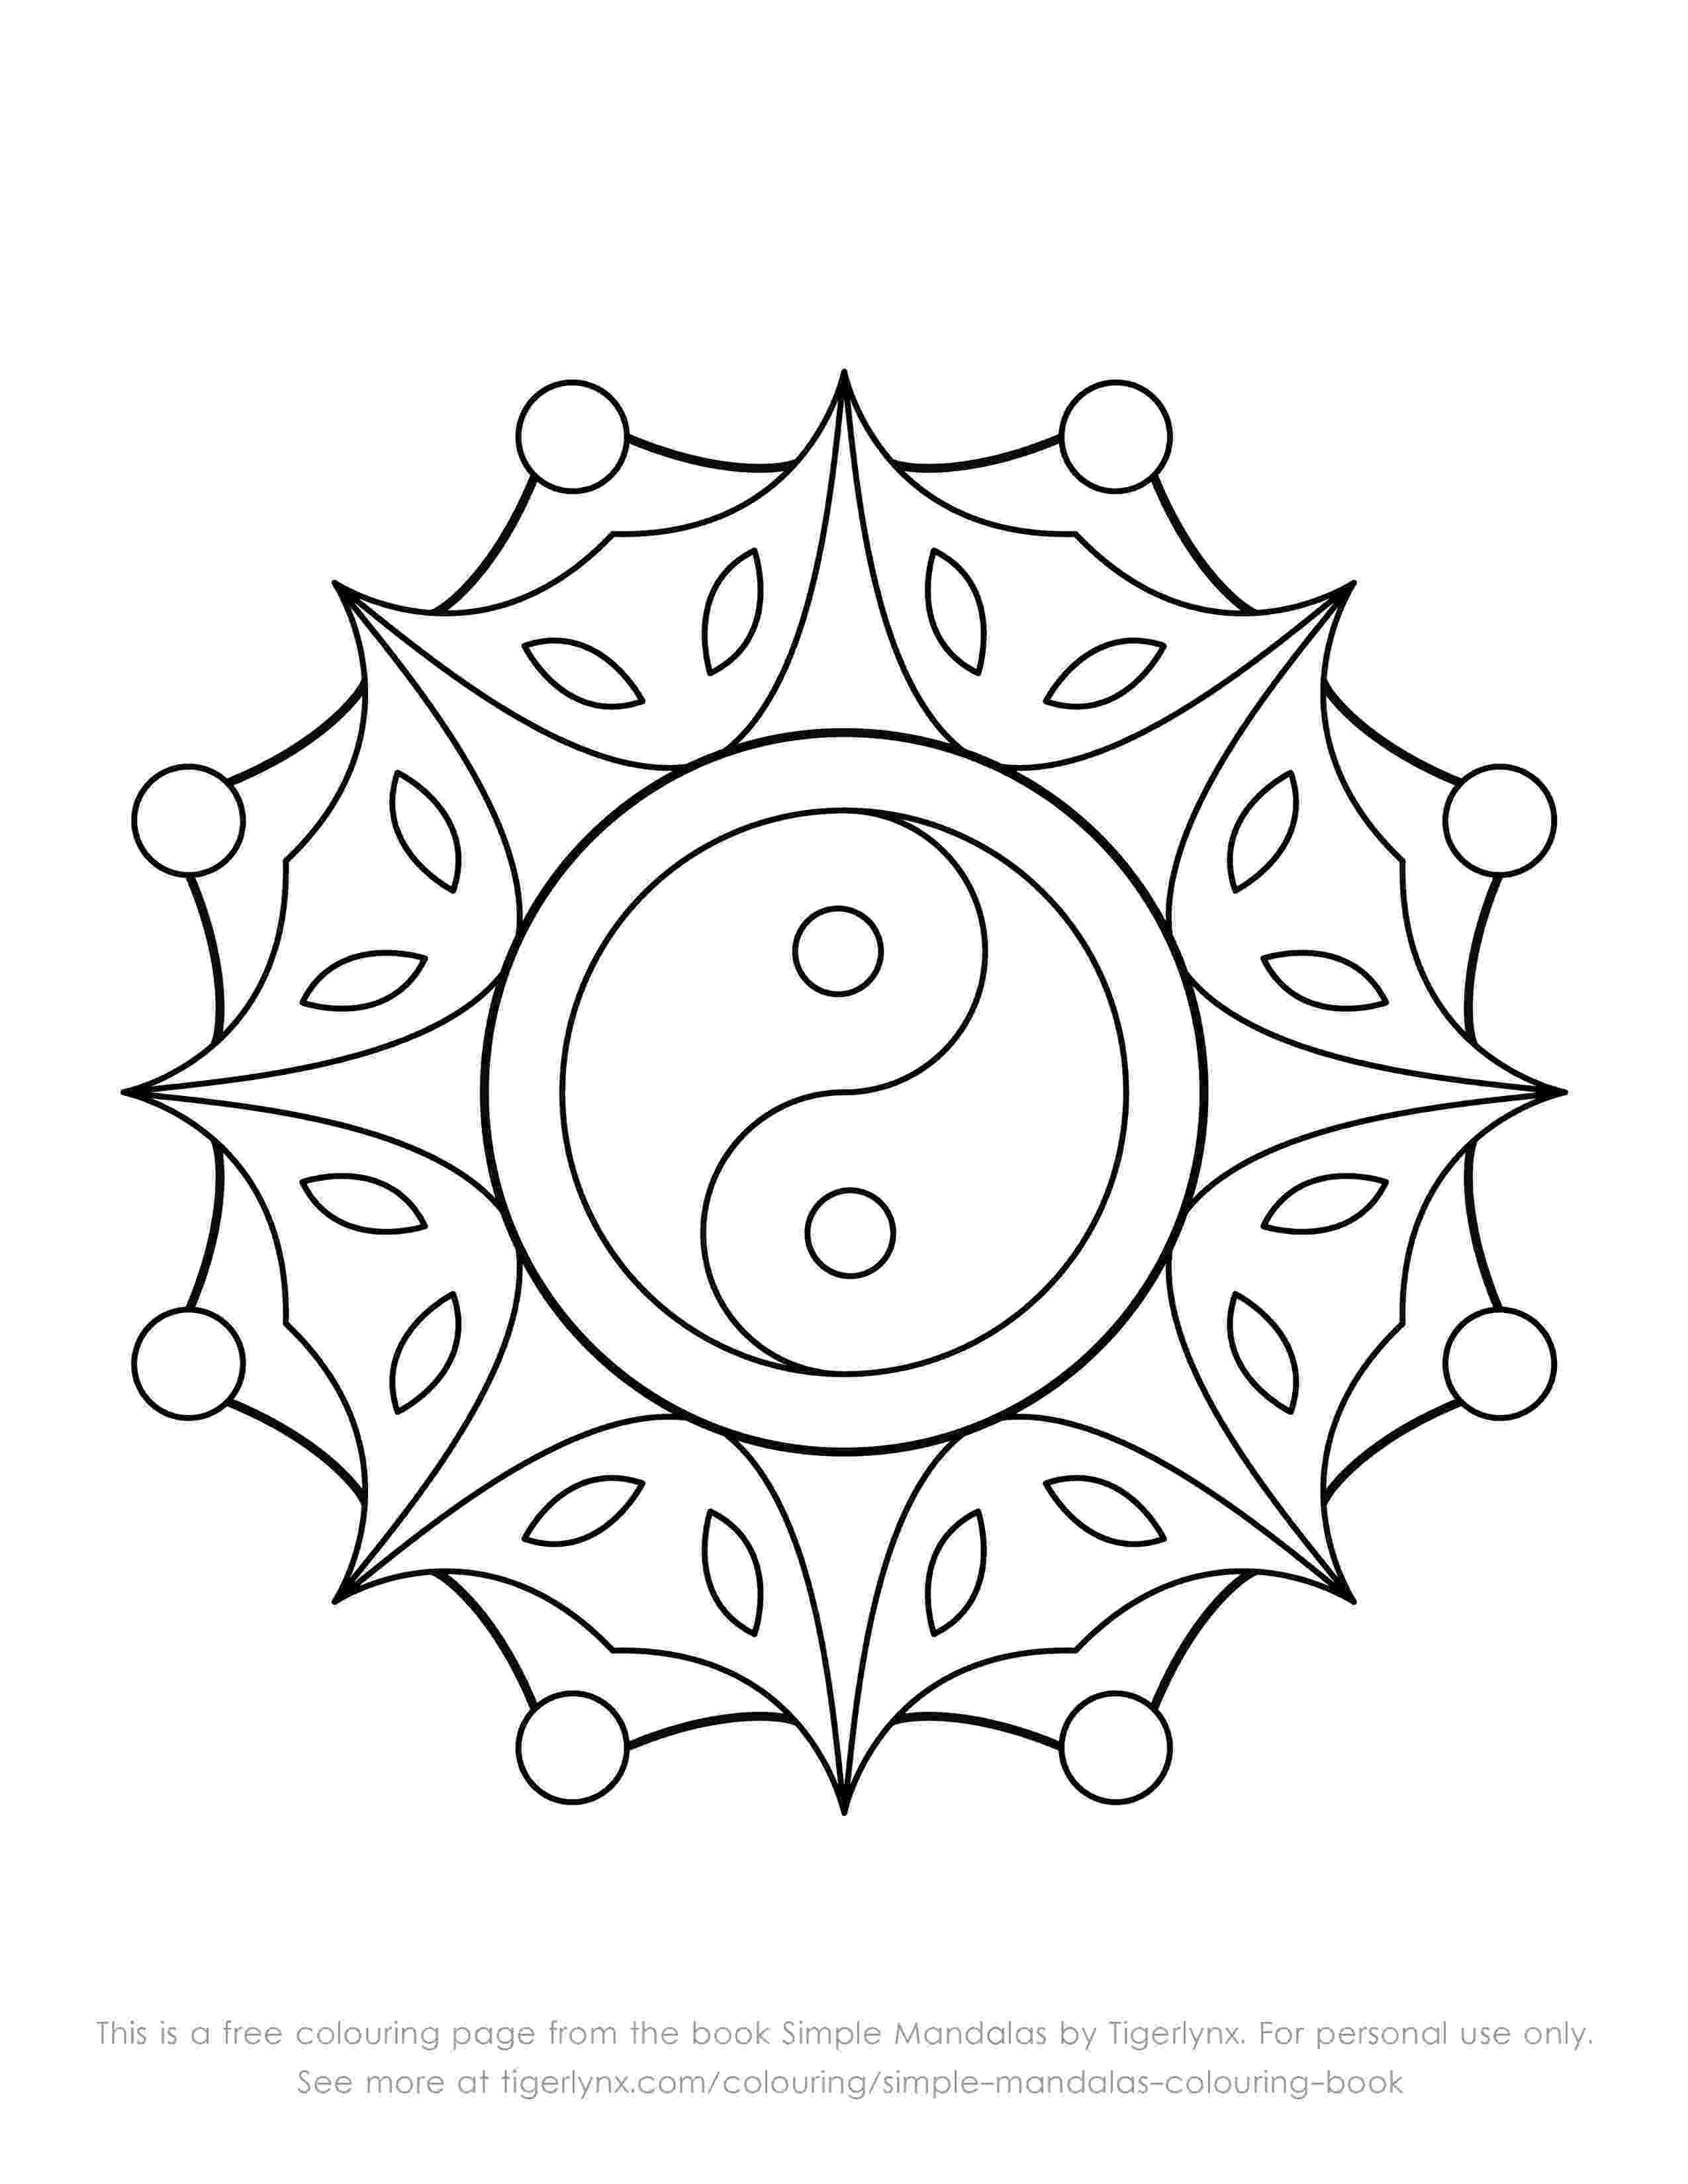 simple mandalas to color art therapy coloring pages to download and print for free mandalas color to simple